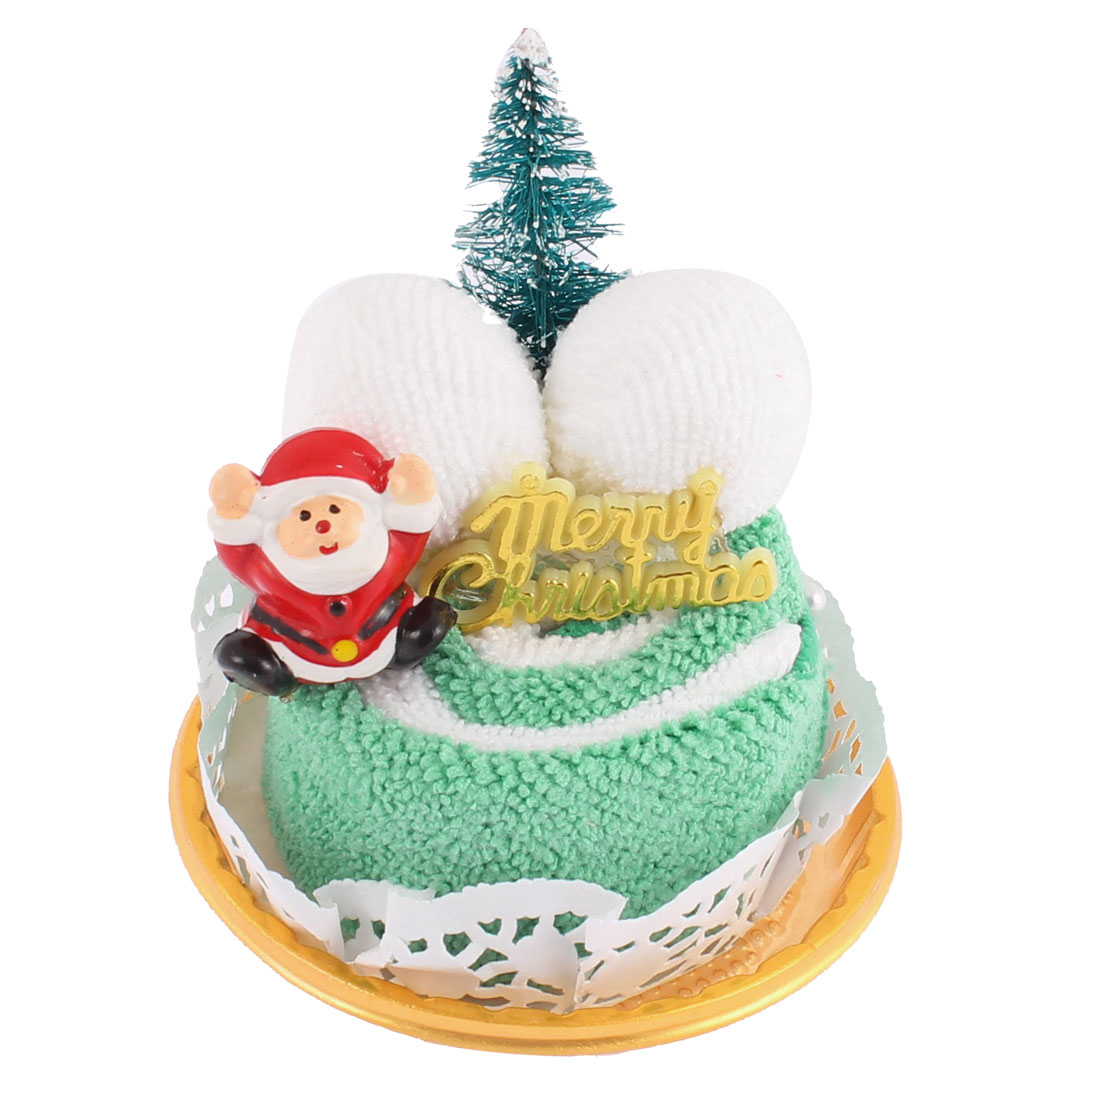 Cake Design Christmas Tree Santa Decor Party Gift Washcloth Hand Towel Green